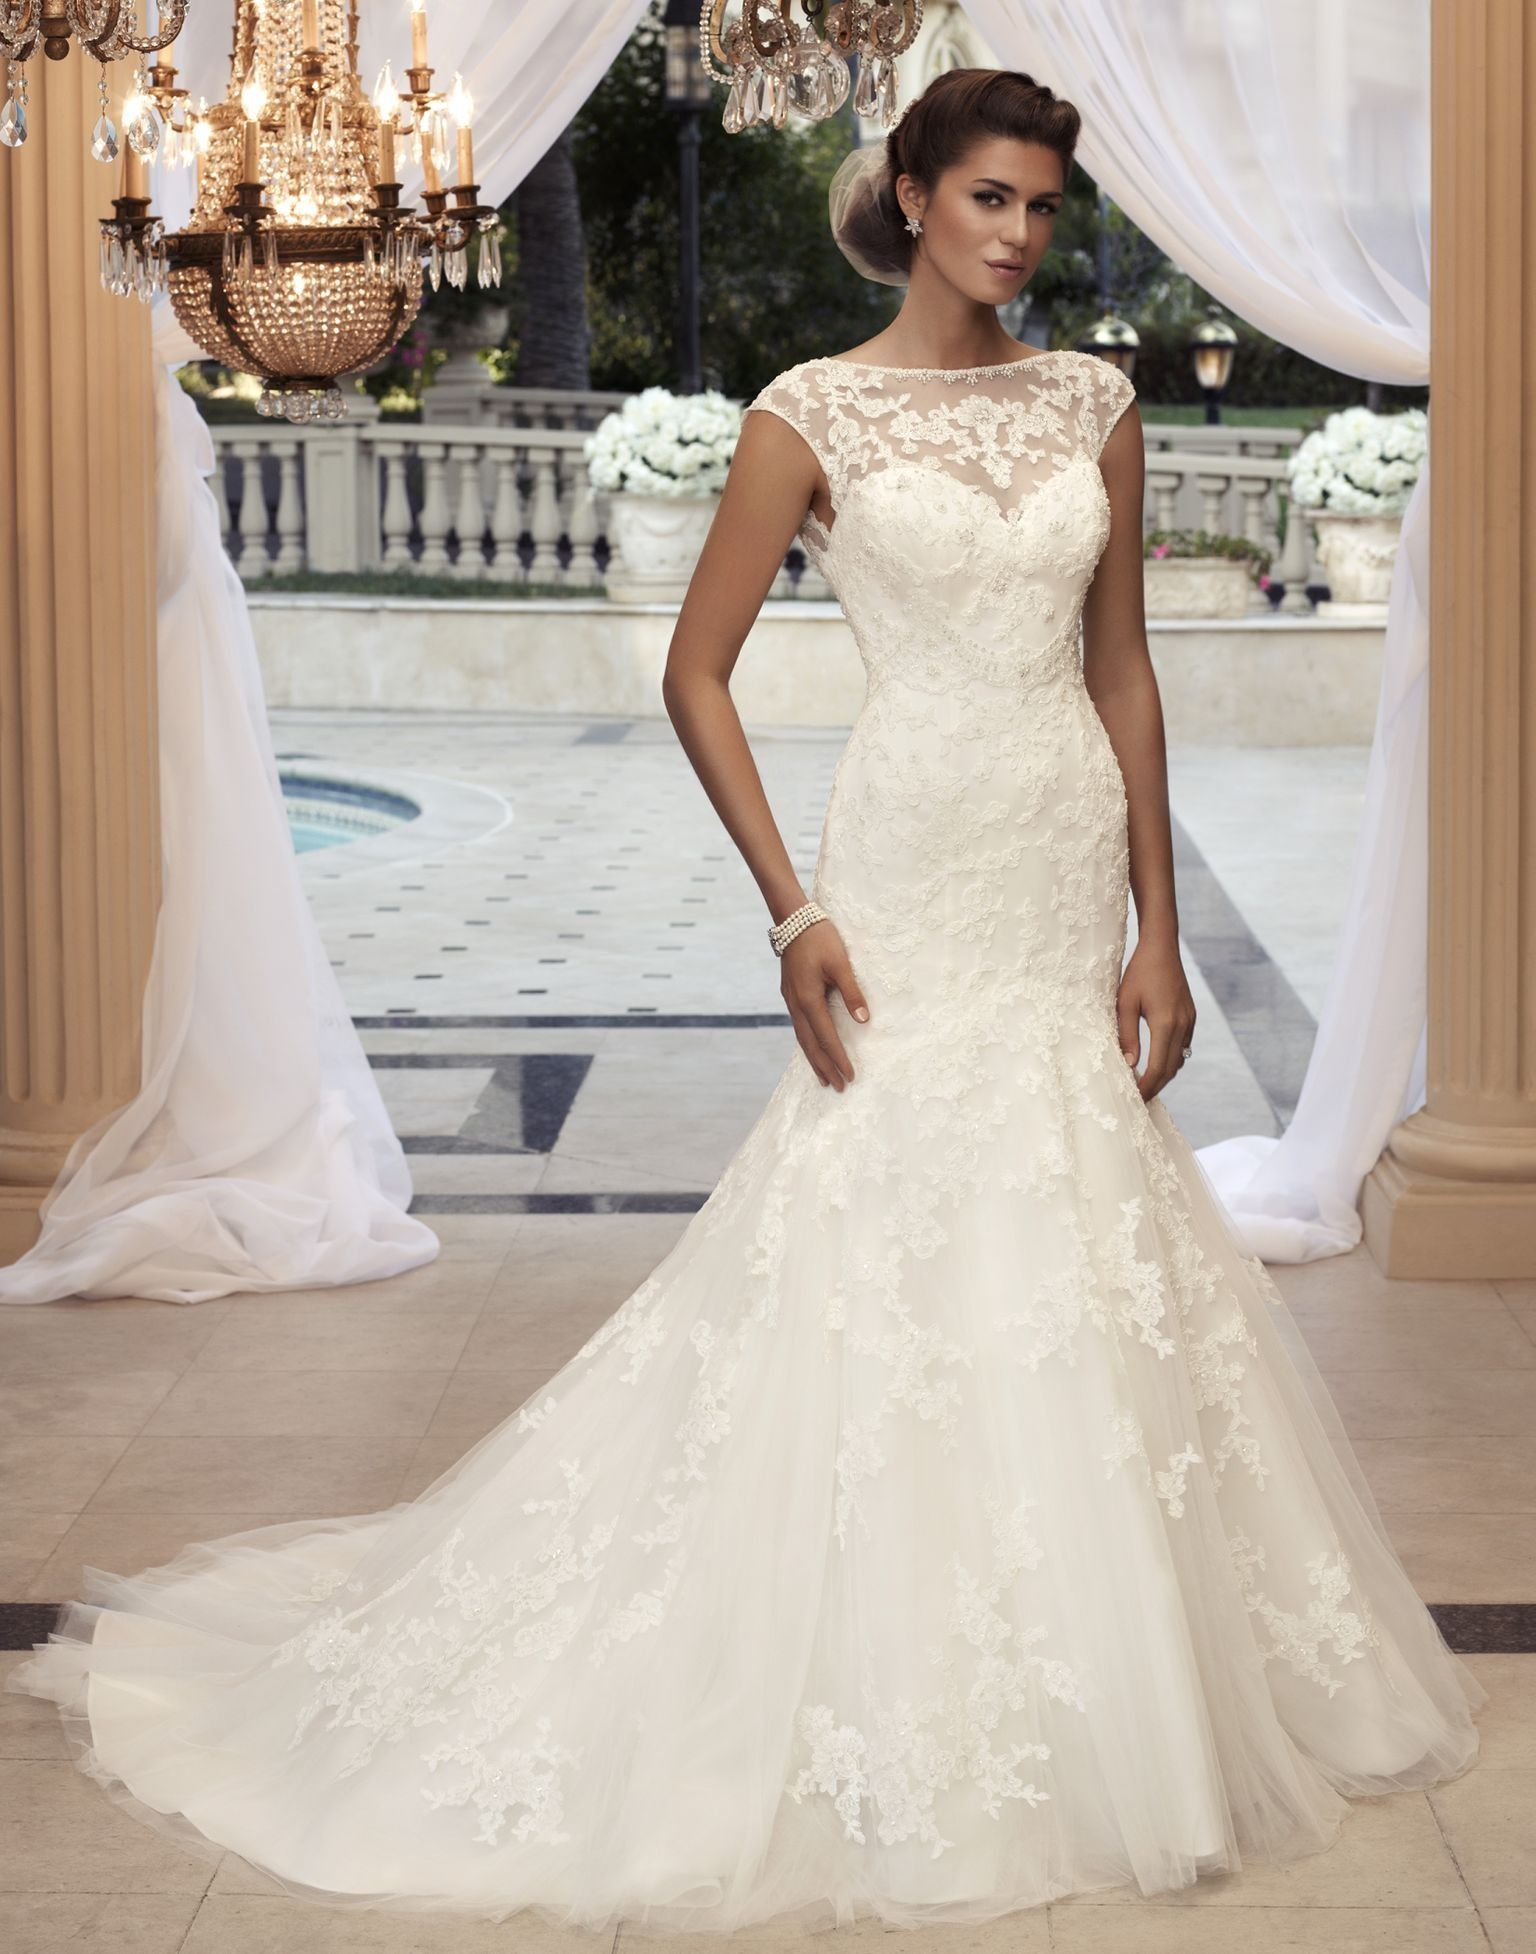 fa1589b8db2a Casablanca Bridal Style 2110, 2000 Dreams Bridal 858-541-0684 ...